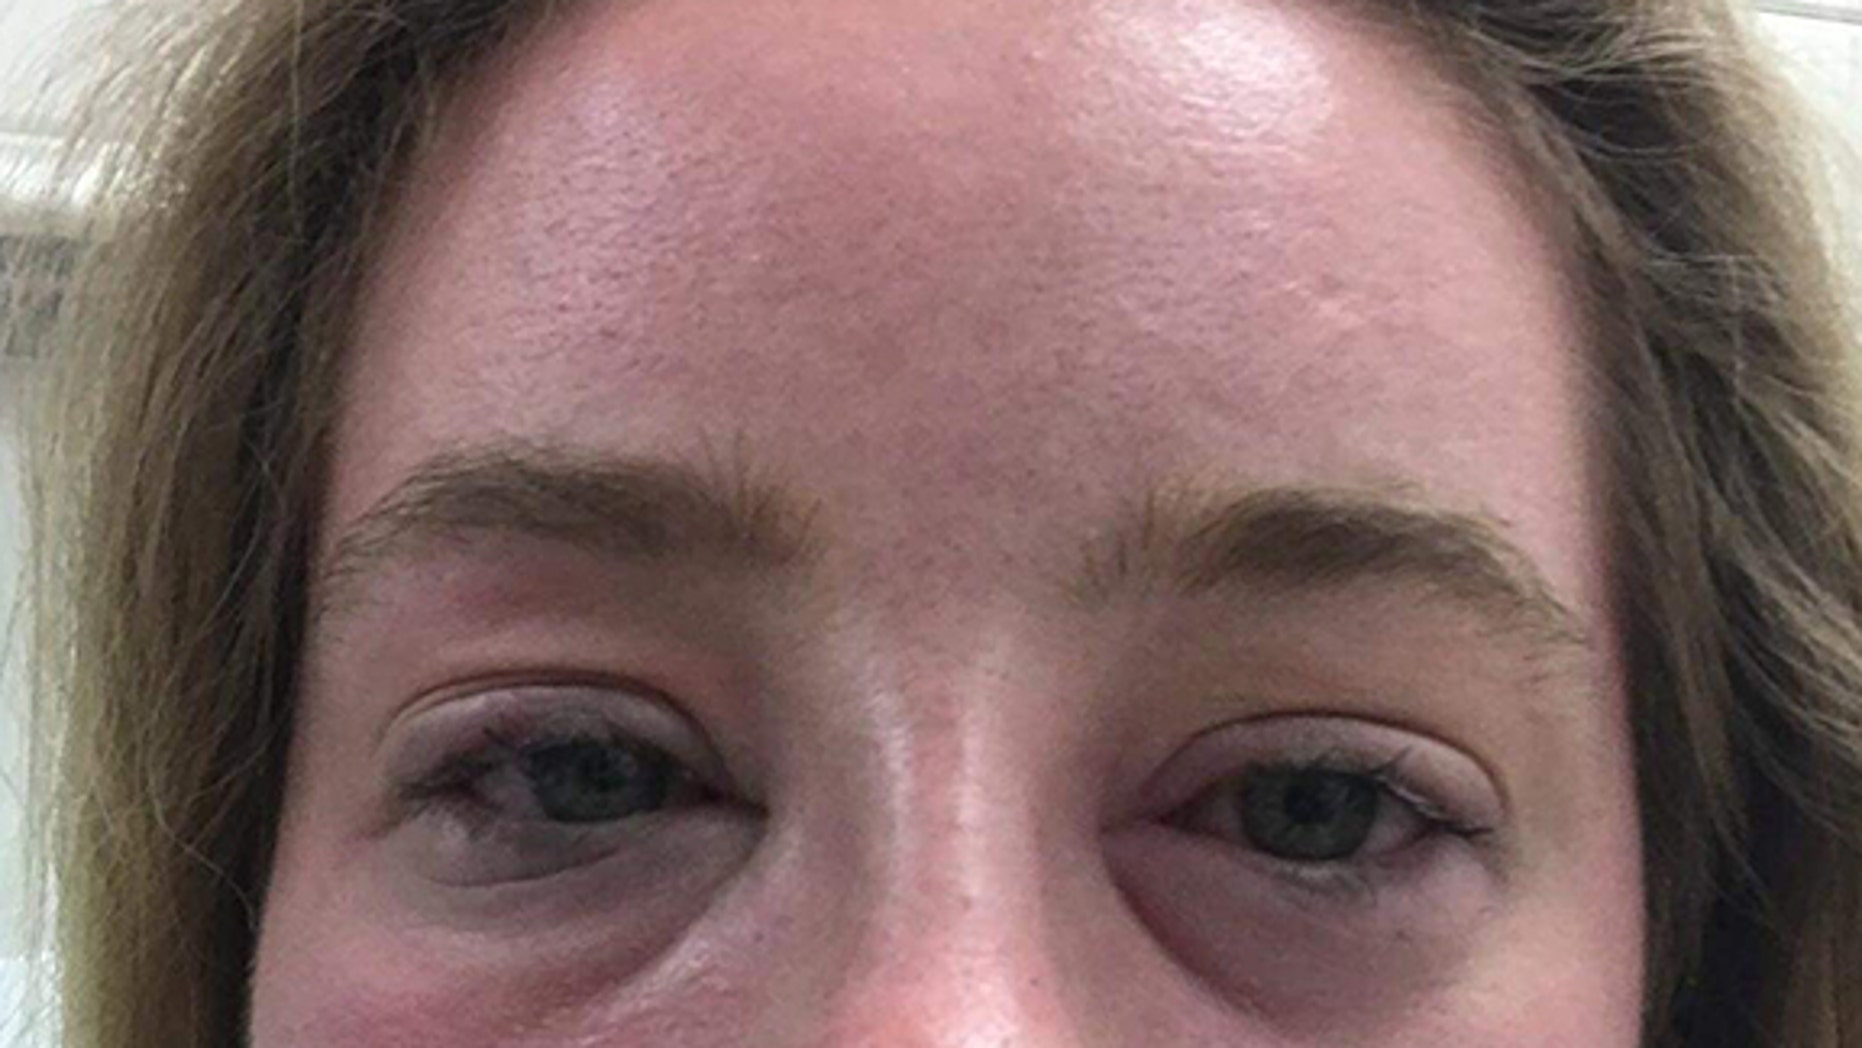 Lydia O'Connor, 23, from Chelmsford, Essex, was diagnosed with chronic idiopathic urticaria and is terrified that the symptoms will return without any warning, at any moment.